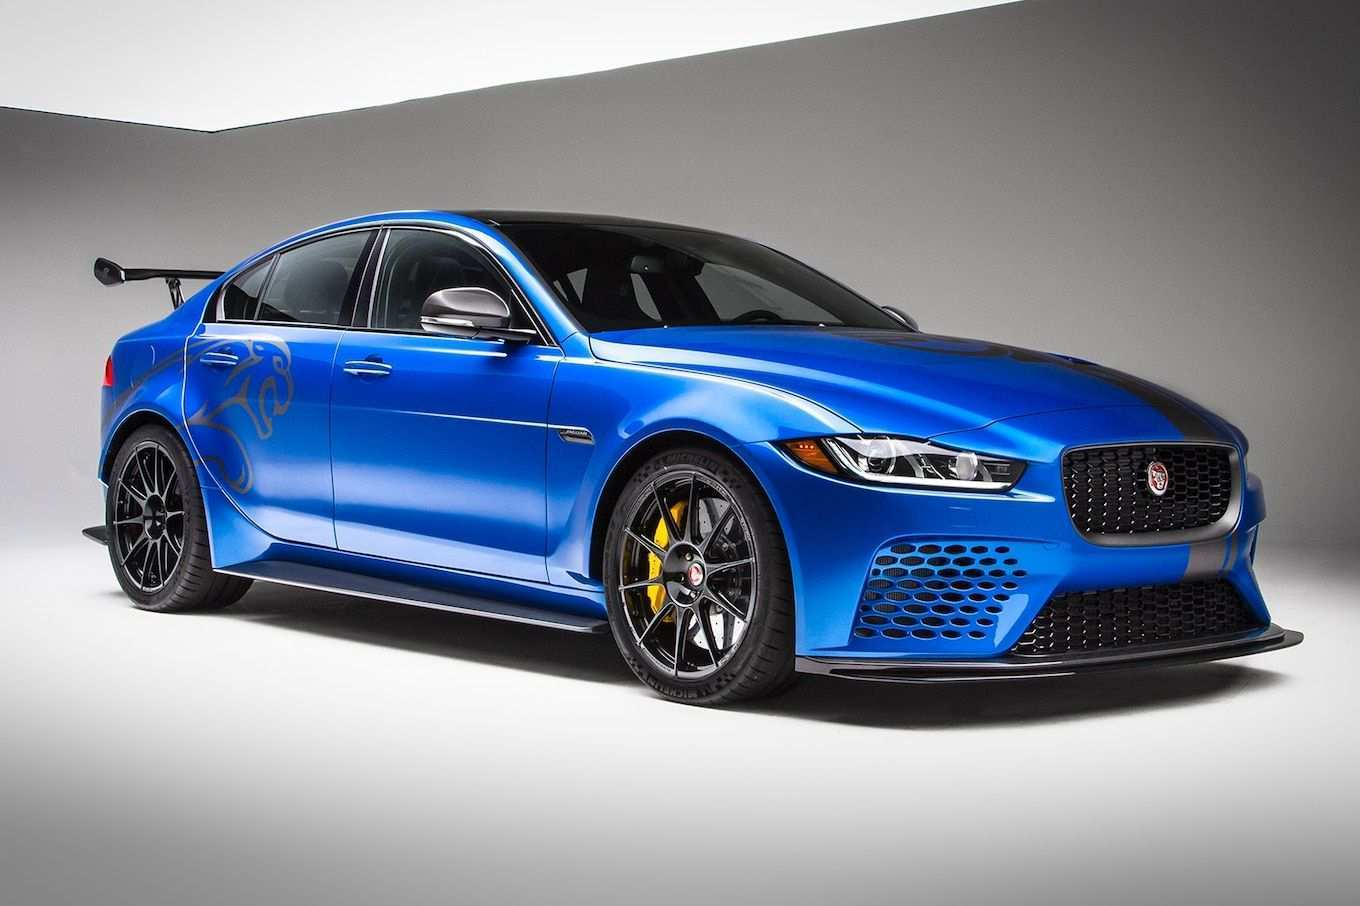 73 The Best 2019 Jaguar Project 8 Prices